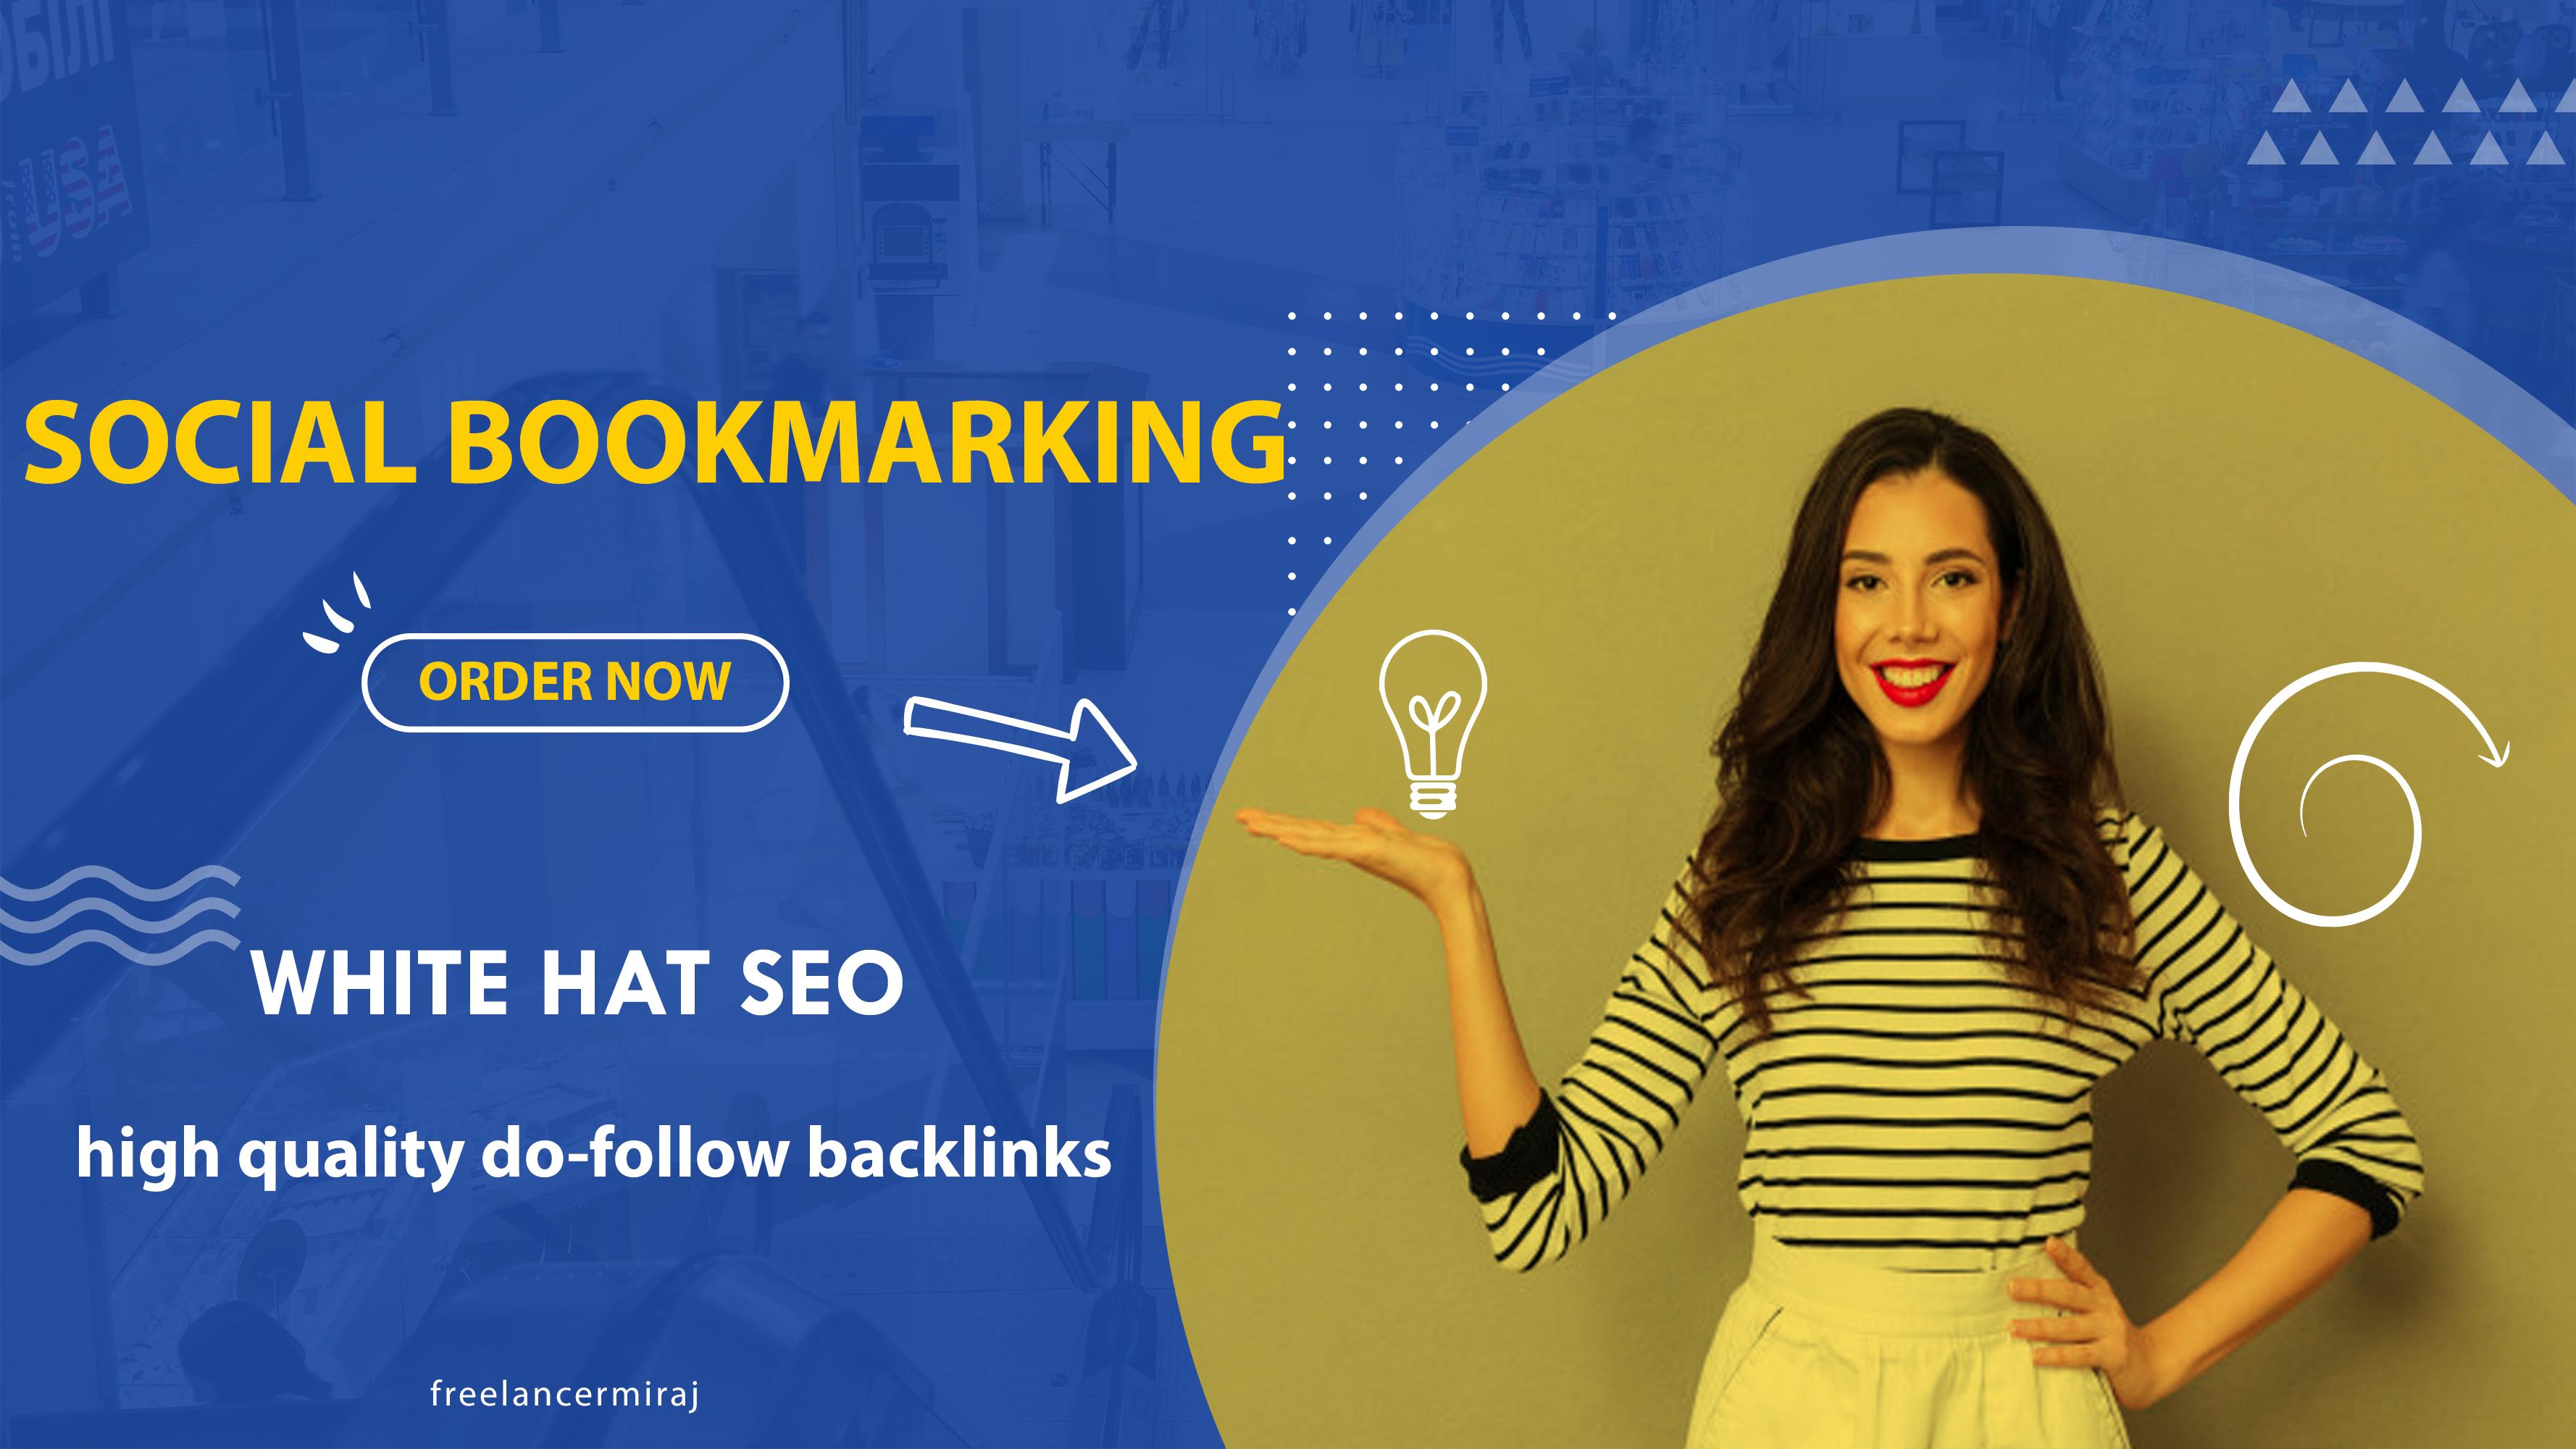 I will do High Quality Social Bookmarking Do-follow Backlinks for your Website.